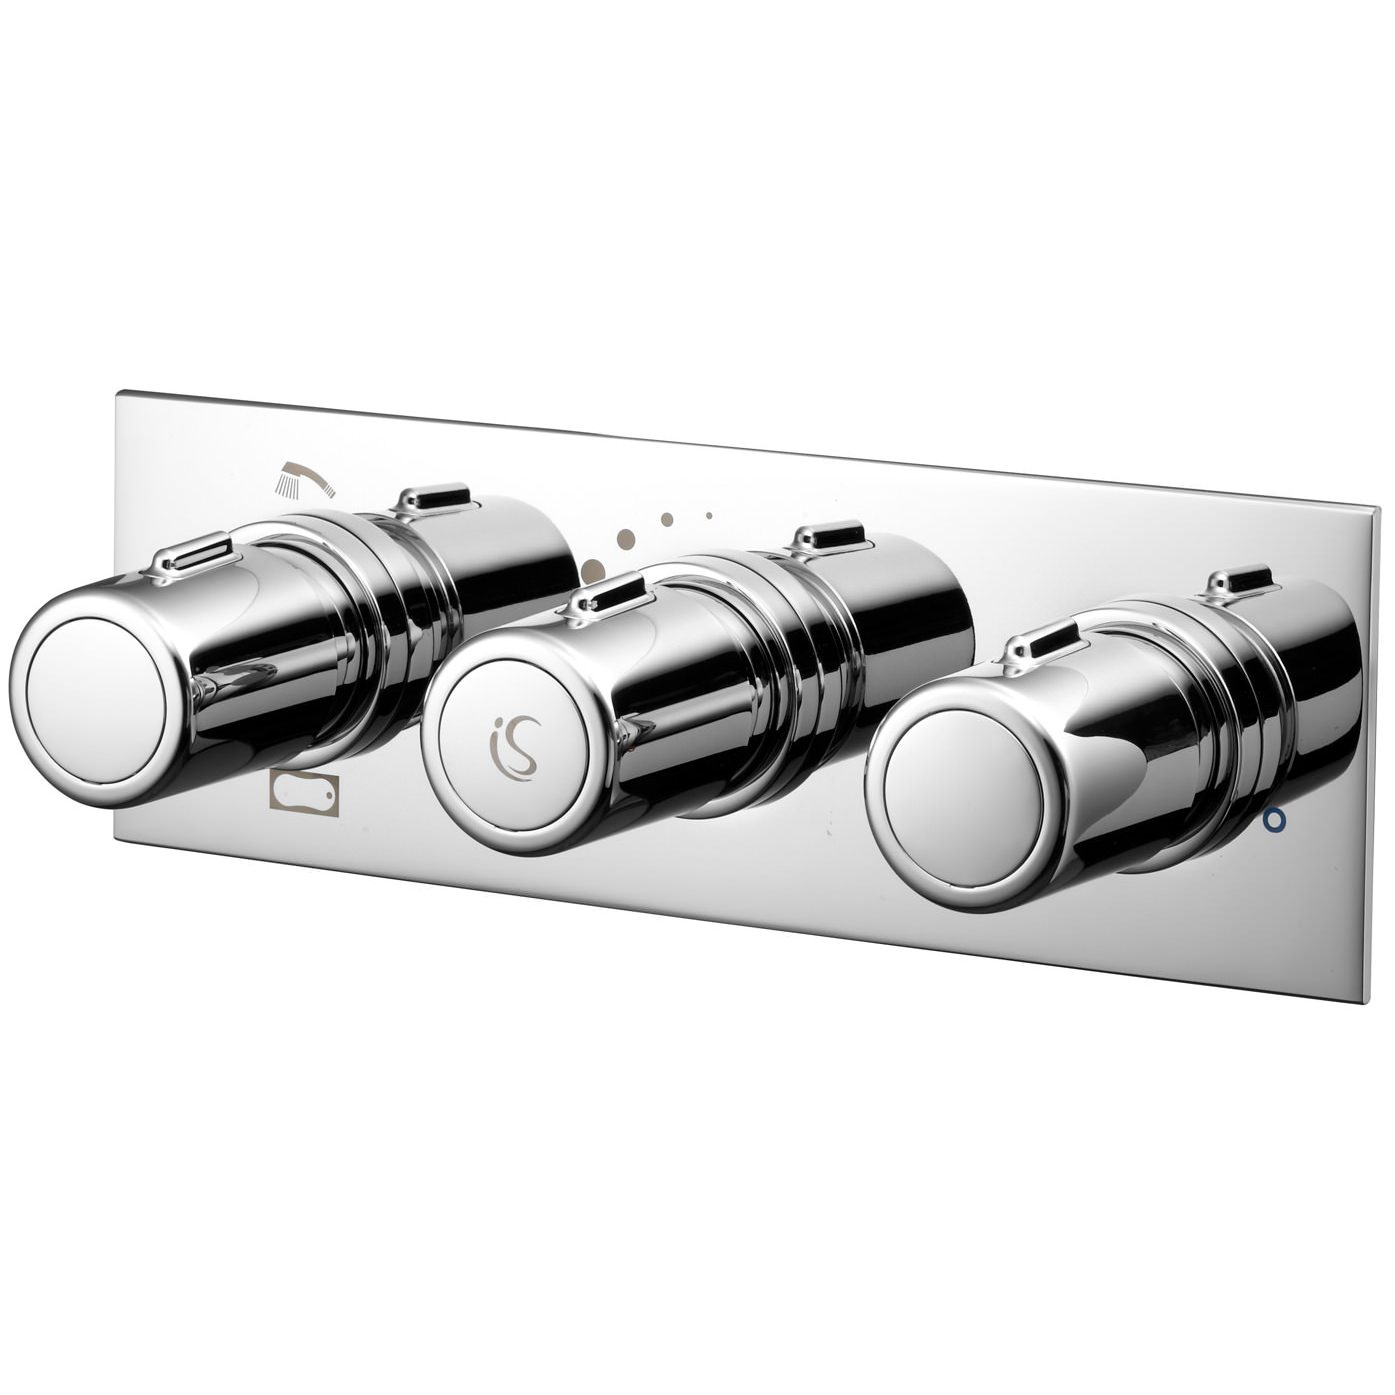 Ideal Standard Attitude 3 Control 2 Way Outlet Thermostatic Shower Valve